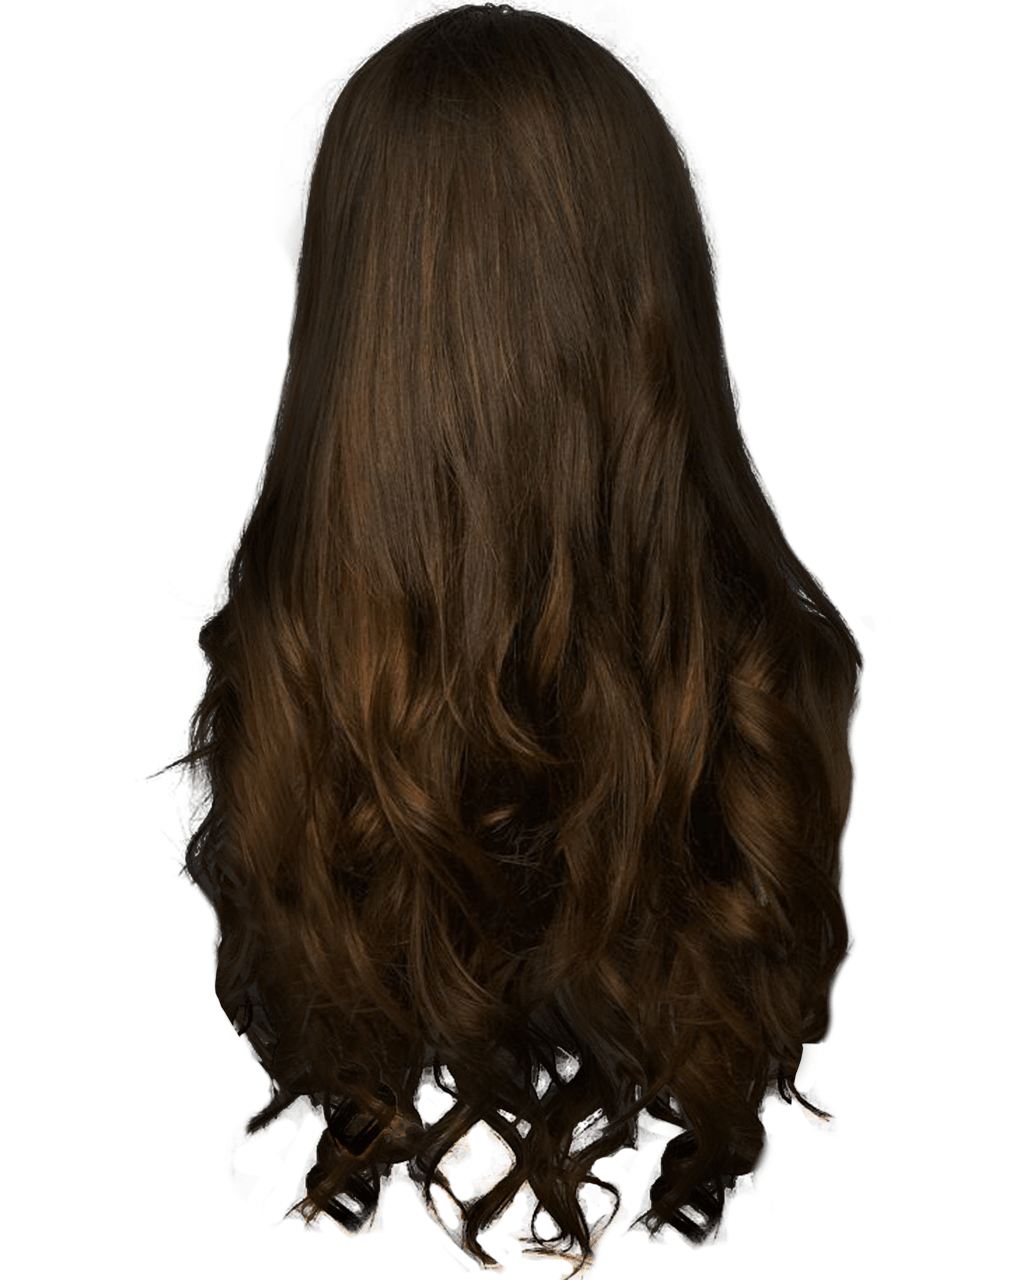 Women png image cabello. Haircut clipart frizzy hair